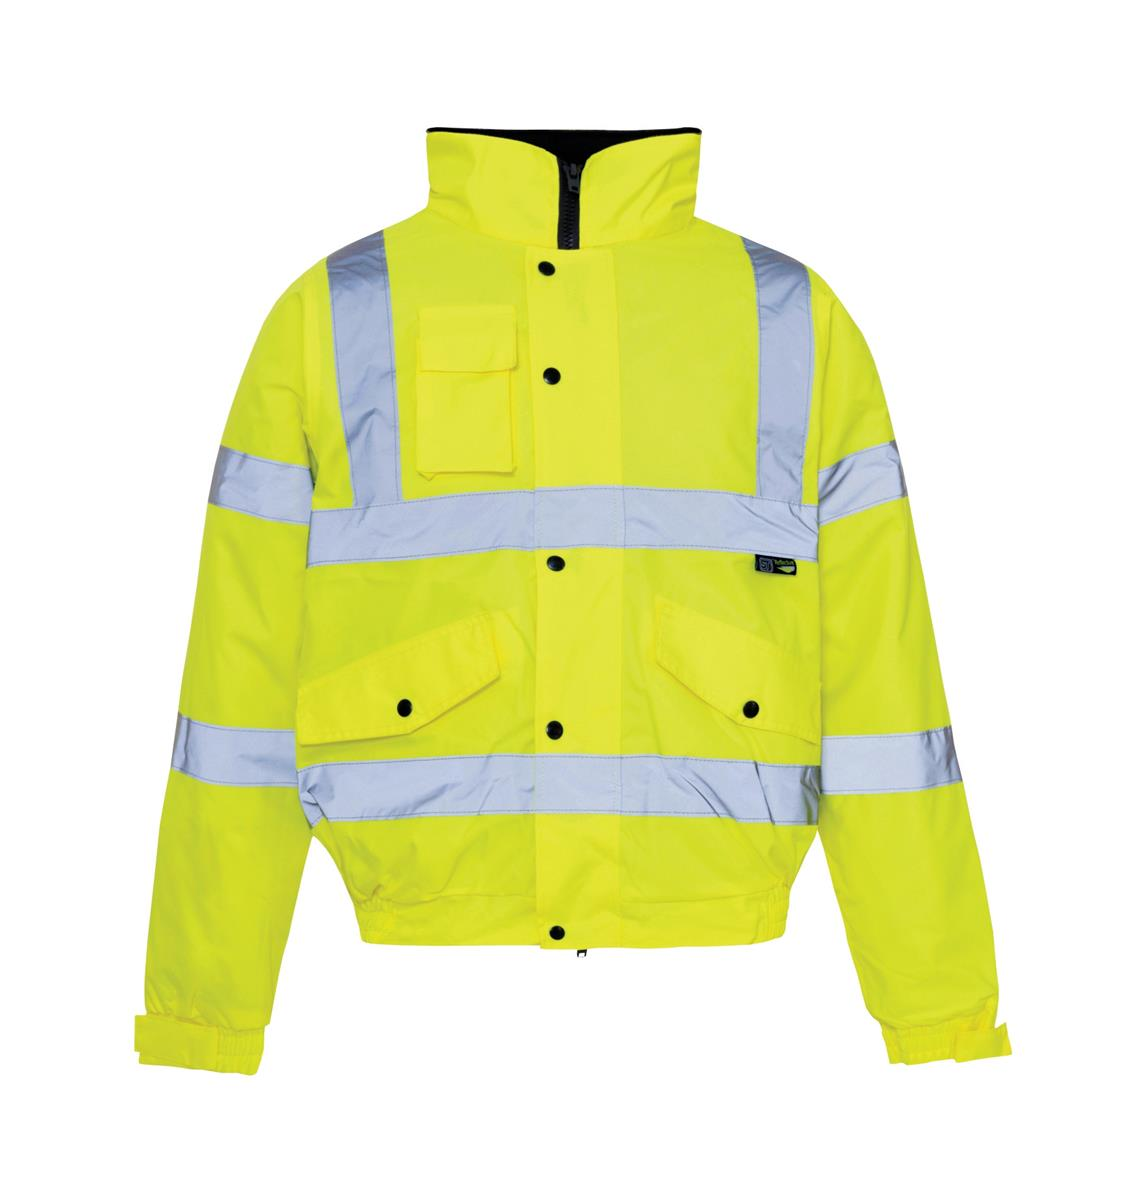 ST High Vis Standard Jacket Storm Bomber Warm Padded Lining XLarge Yellow Ref 36844 *Approx 3 Day L/Time*